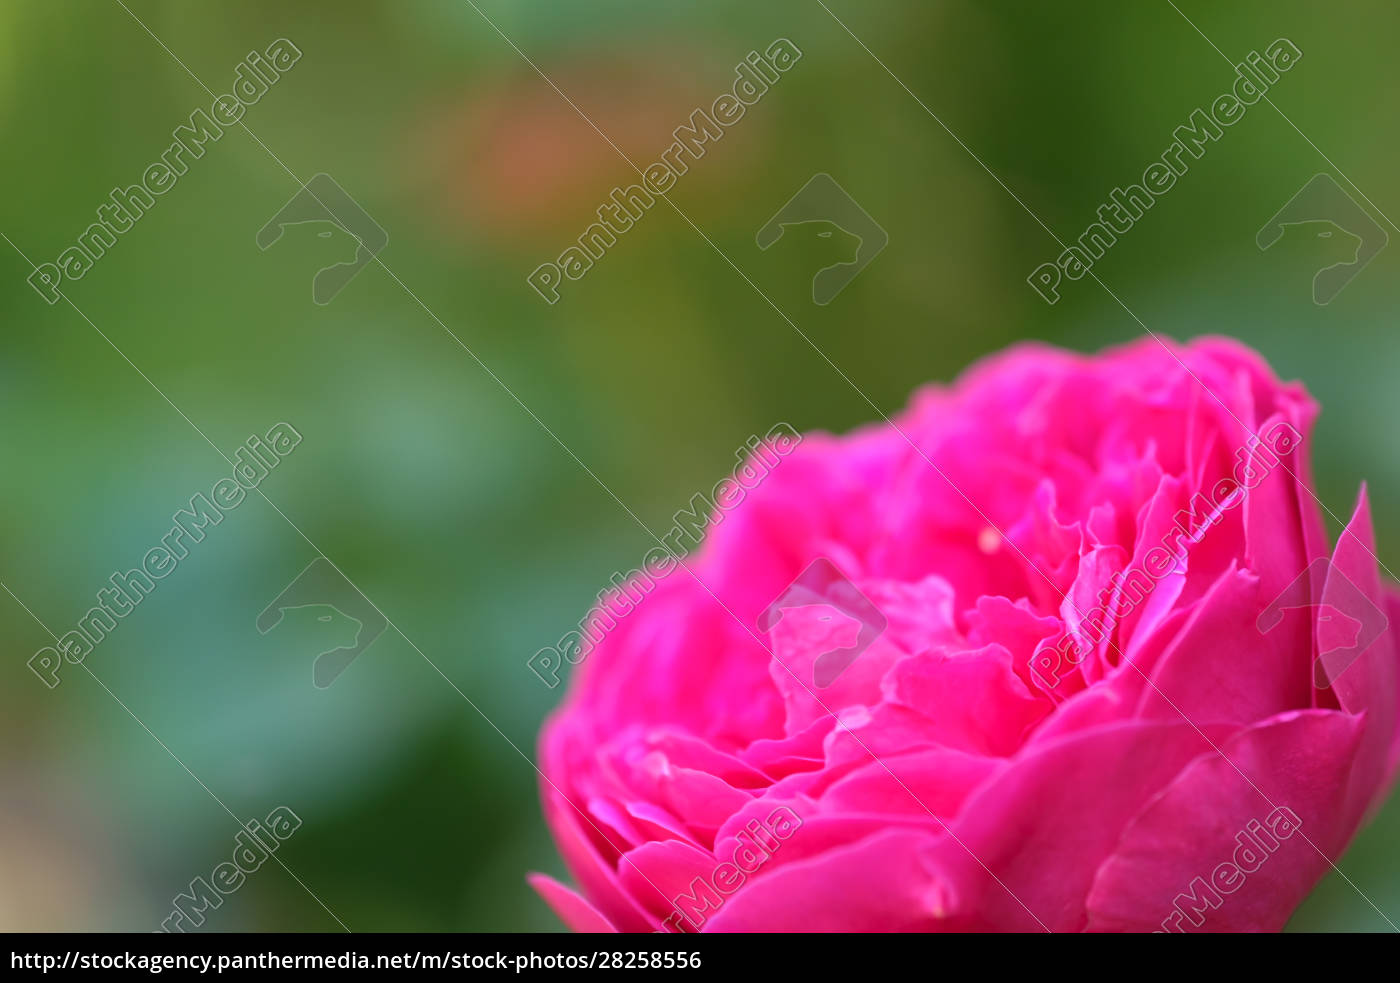 magenta, rose, blossom, with, blur - 28258556